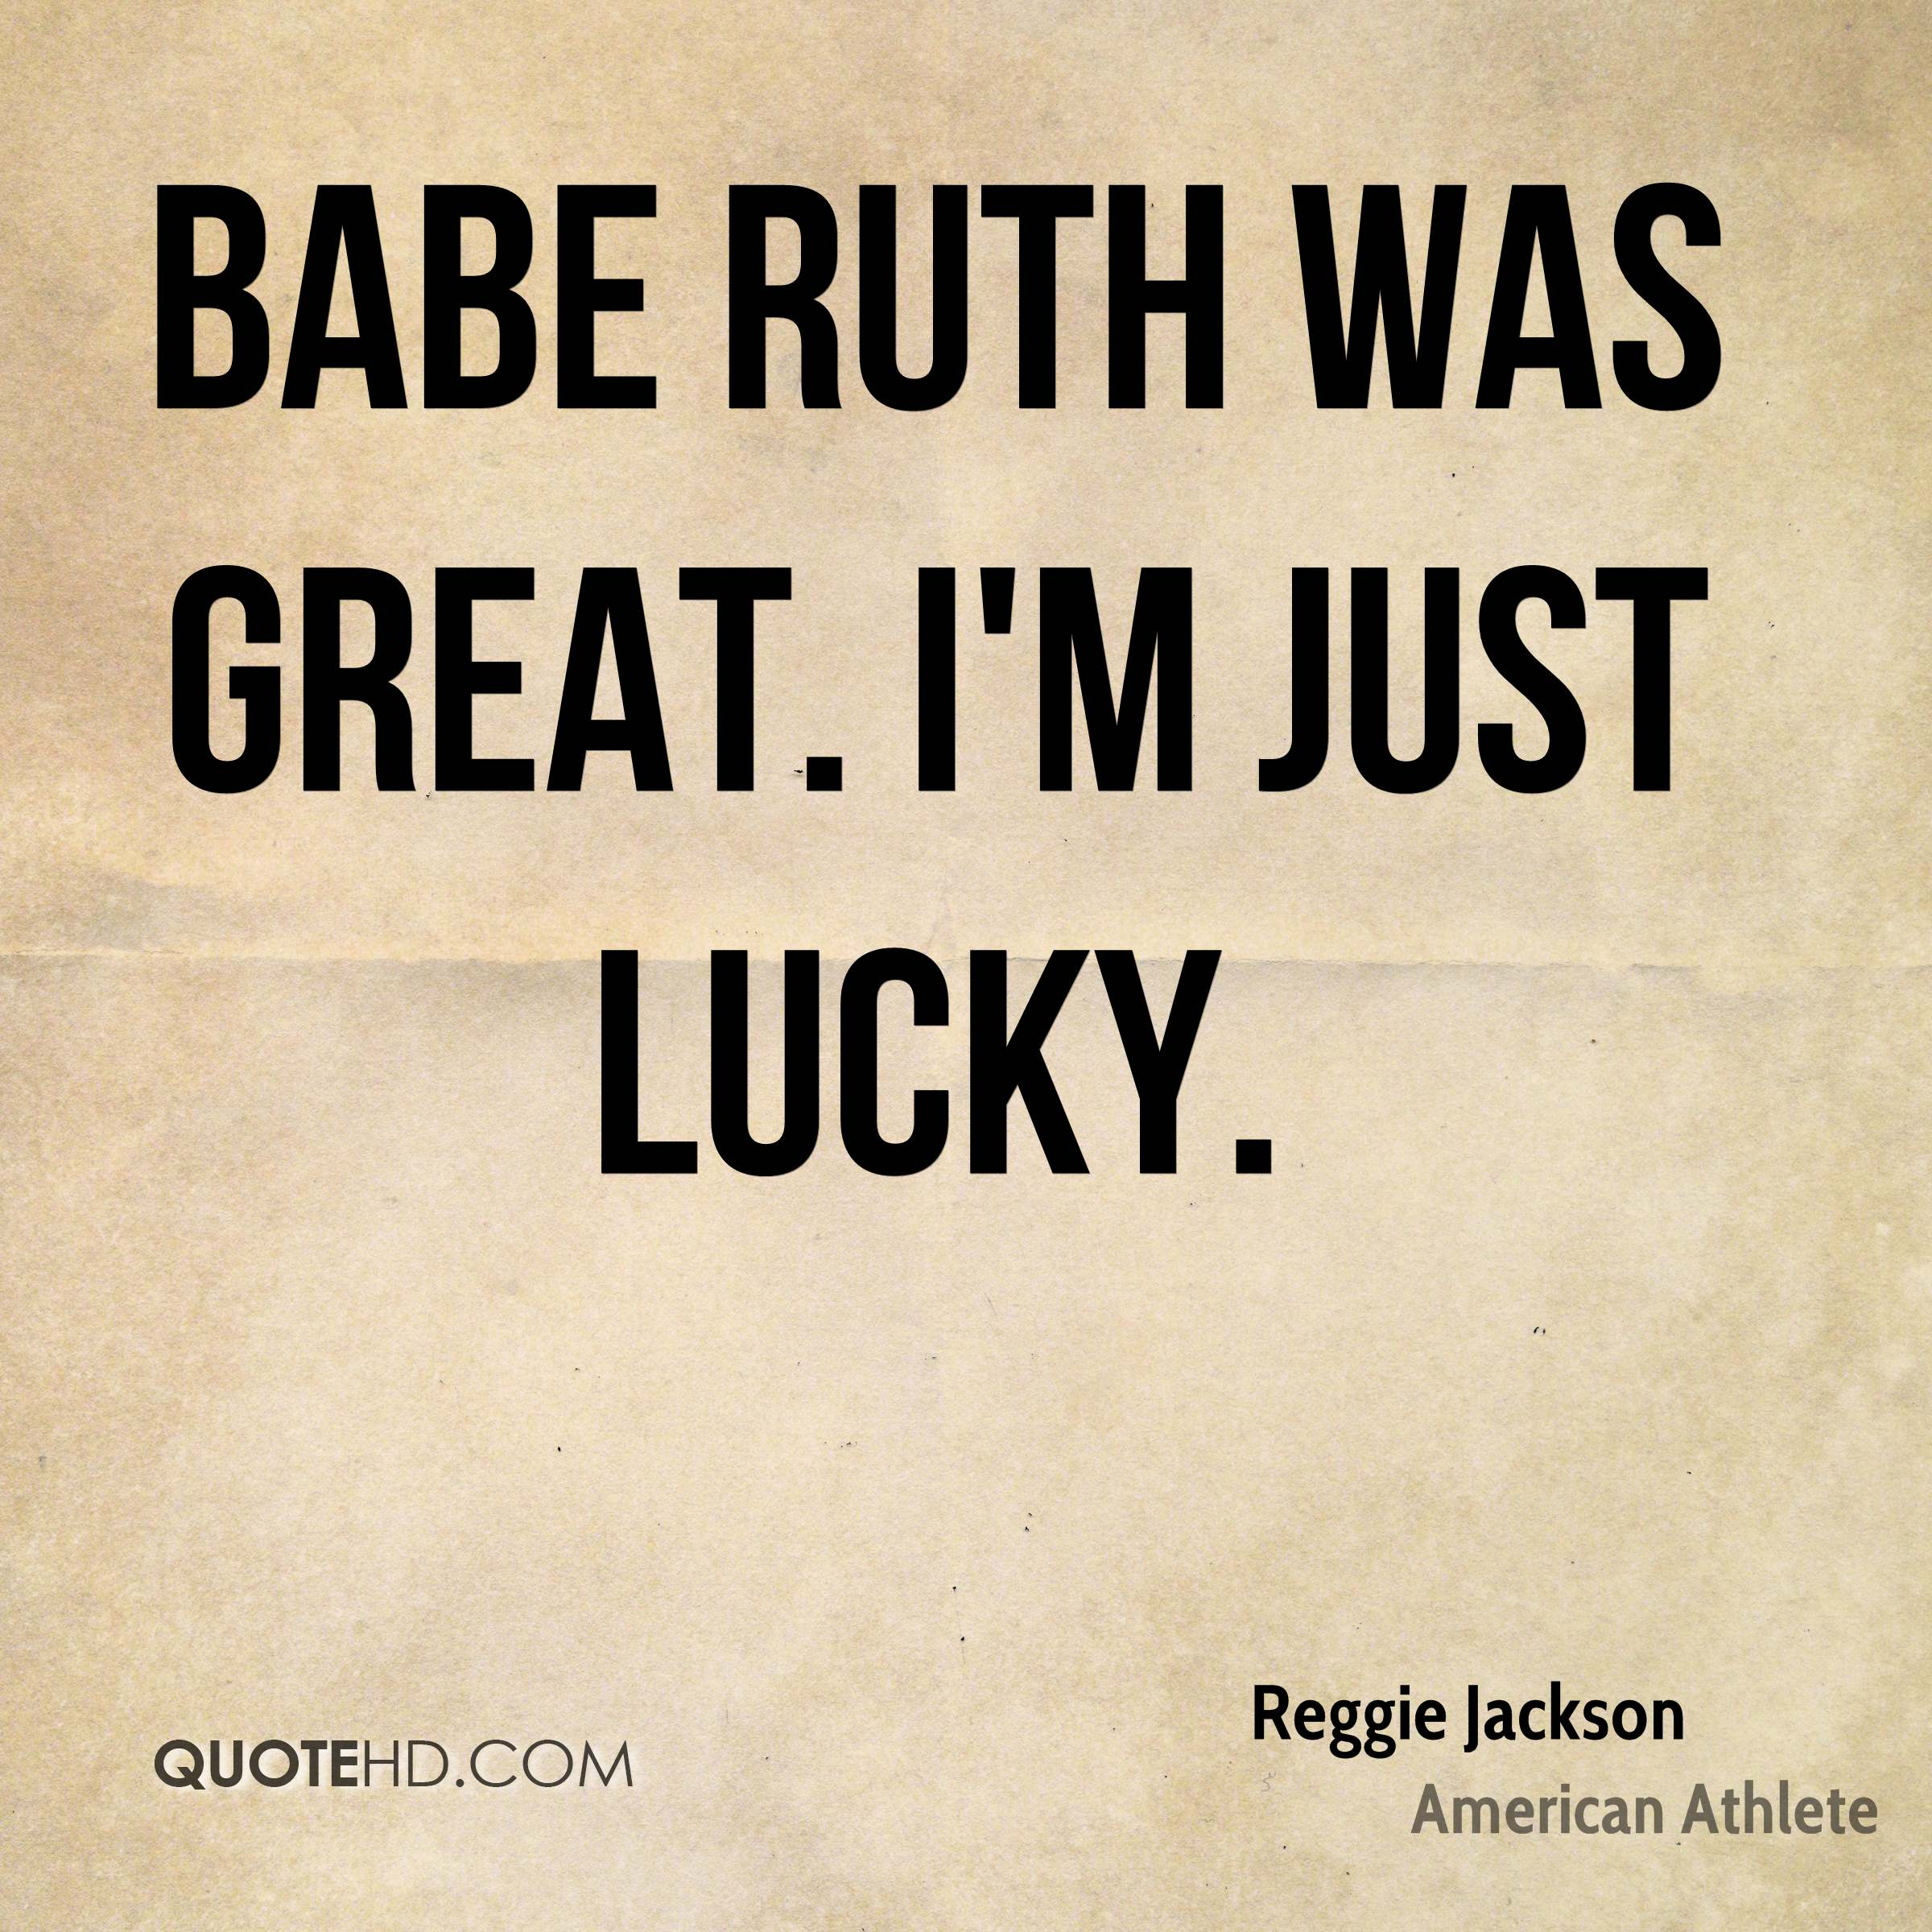 Babe Ruth was great. I'm just lucky.